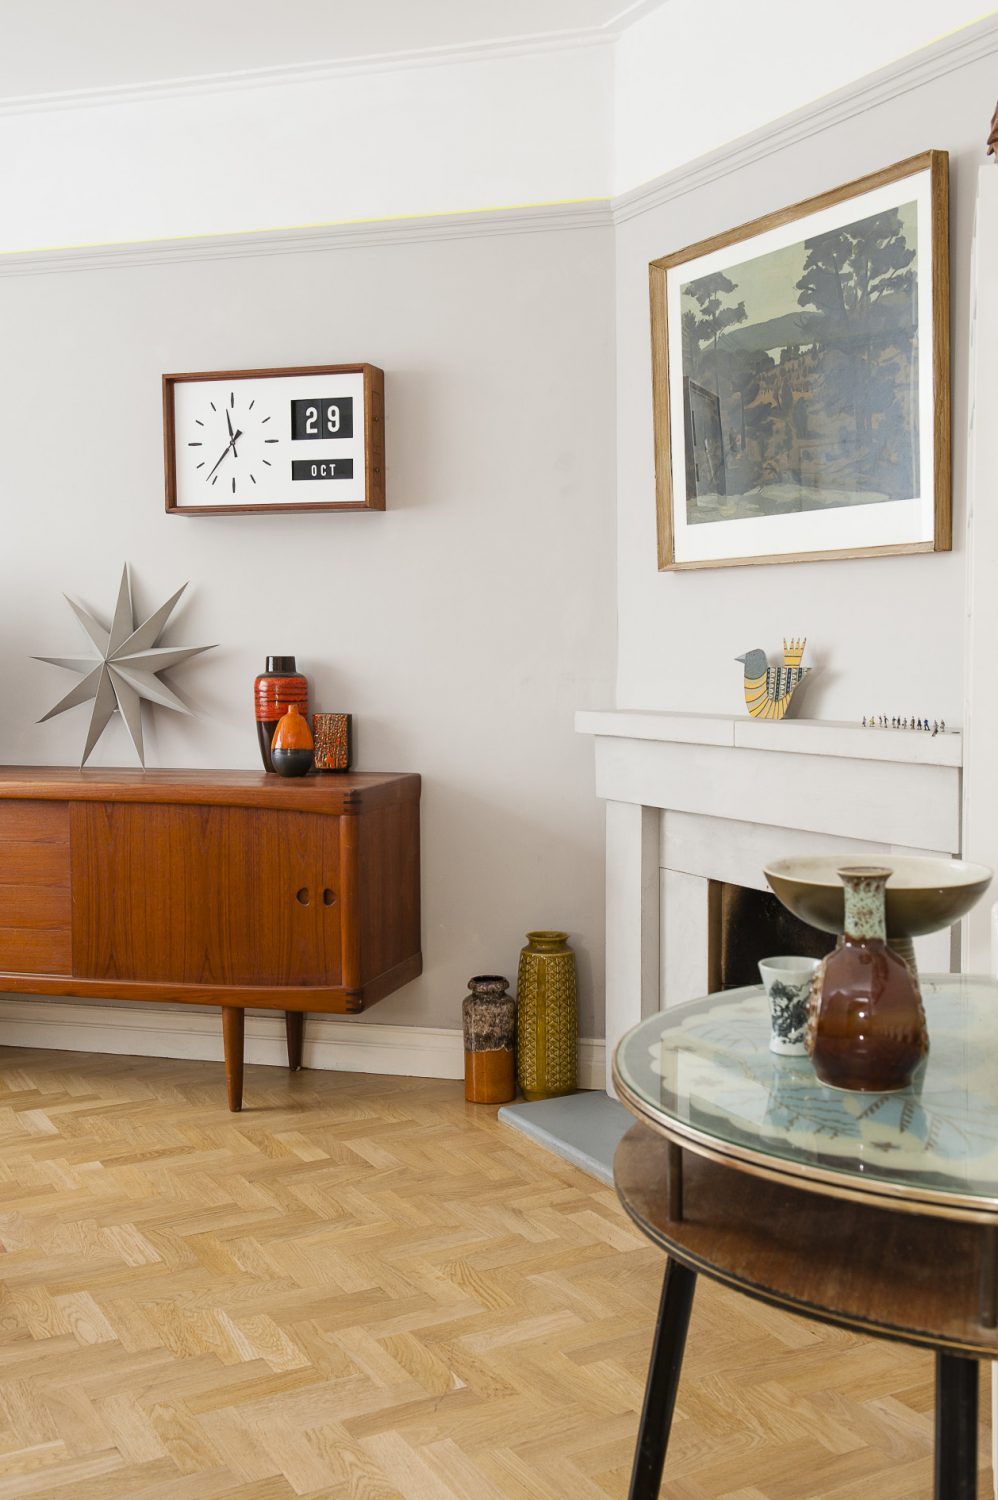 Above a spectacular mid-60s sideboard hangs a 60s bank clock showing both time and date